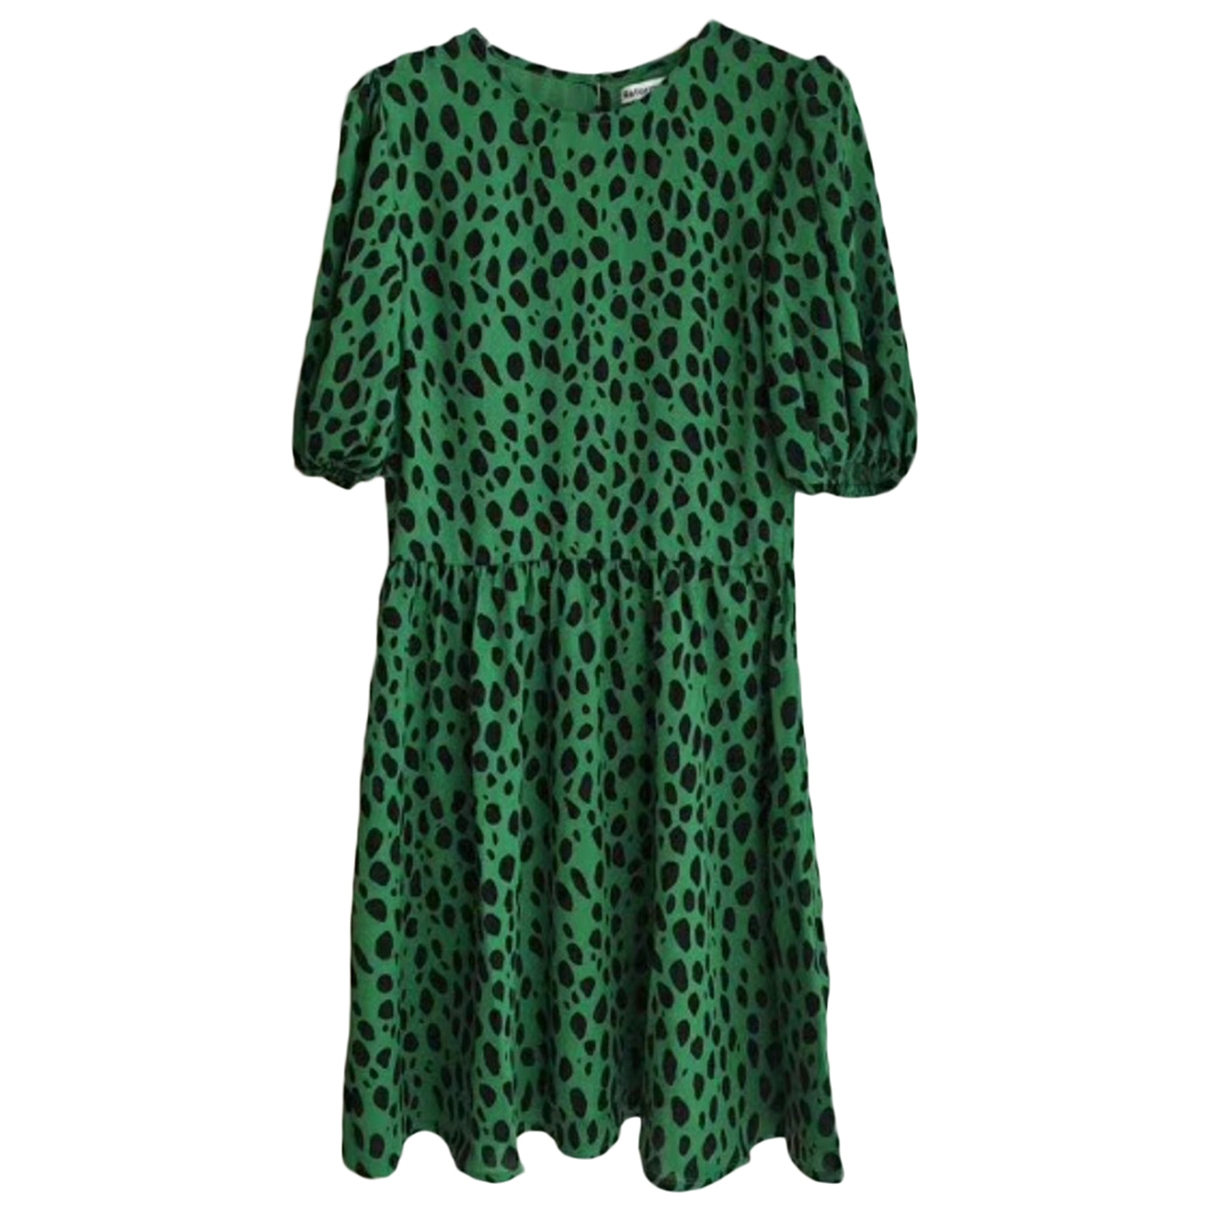 Reformation \N Green dress for Women 4 US